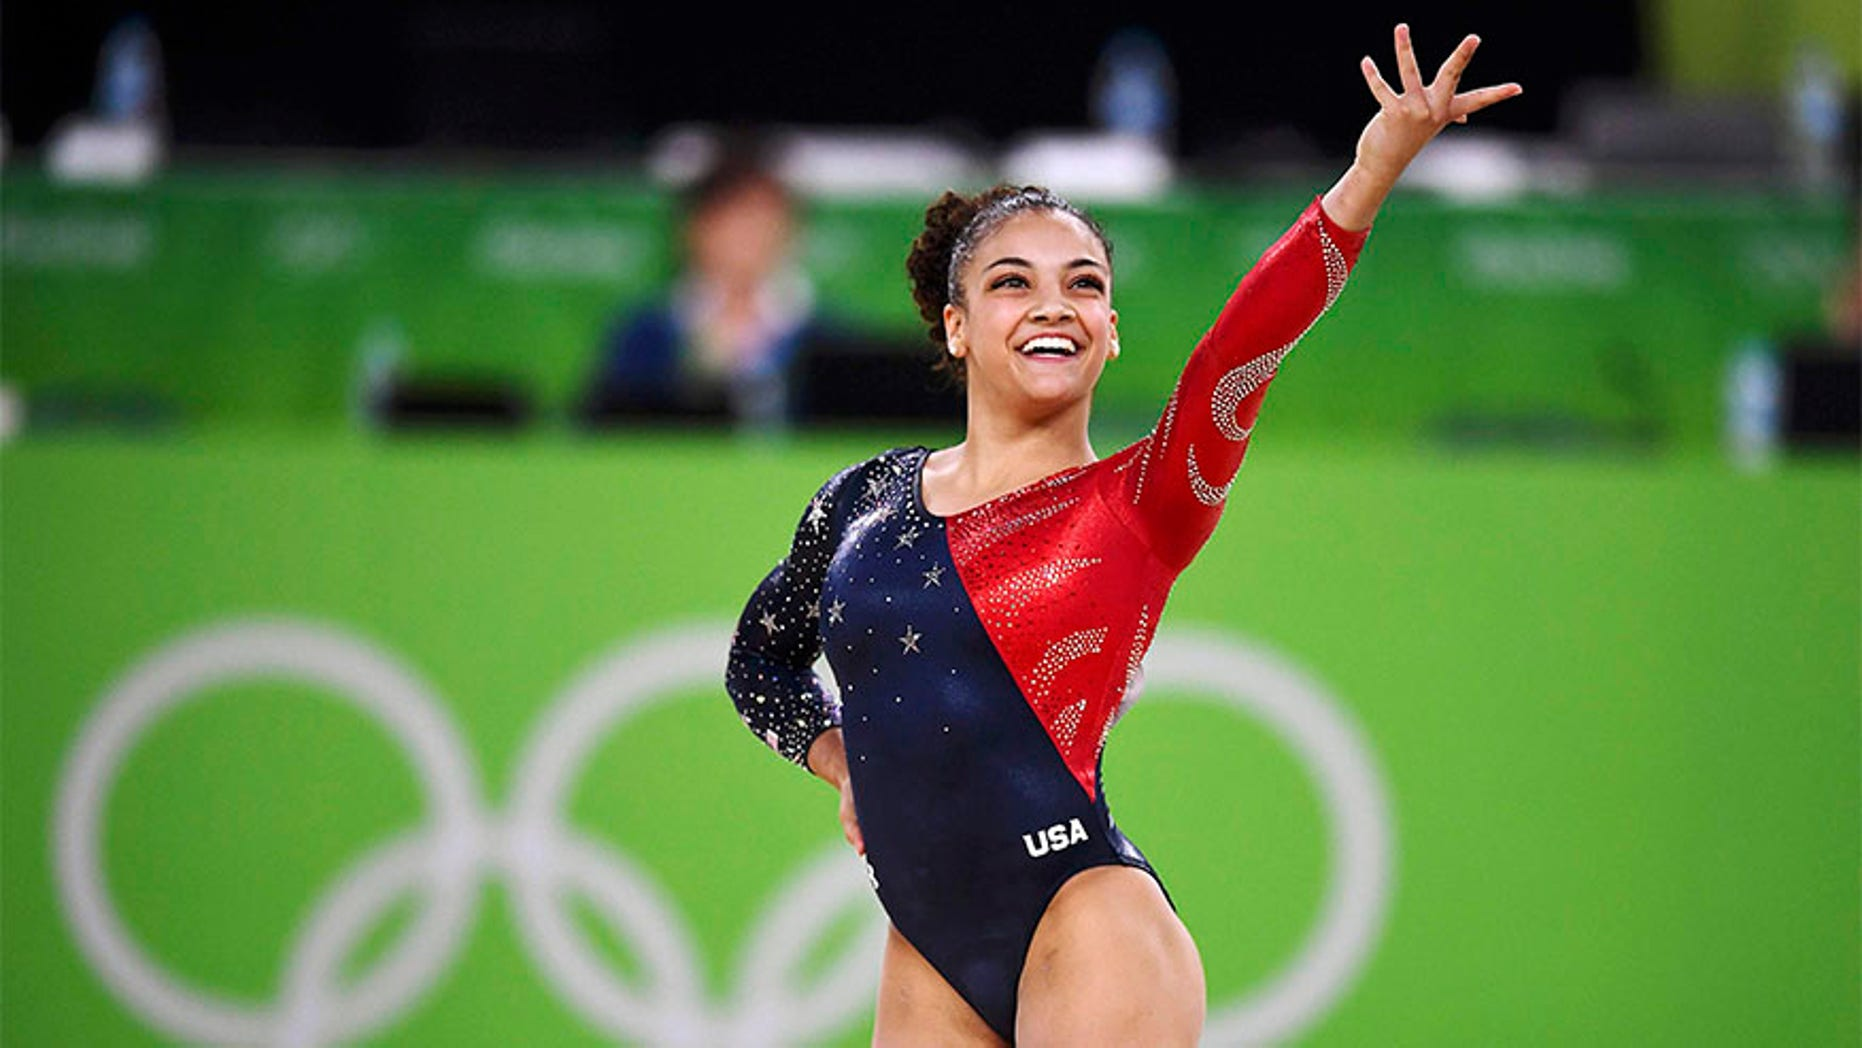 Laurie Hernandez at the 2016 Rio Olympics.